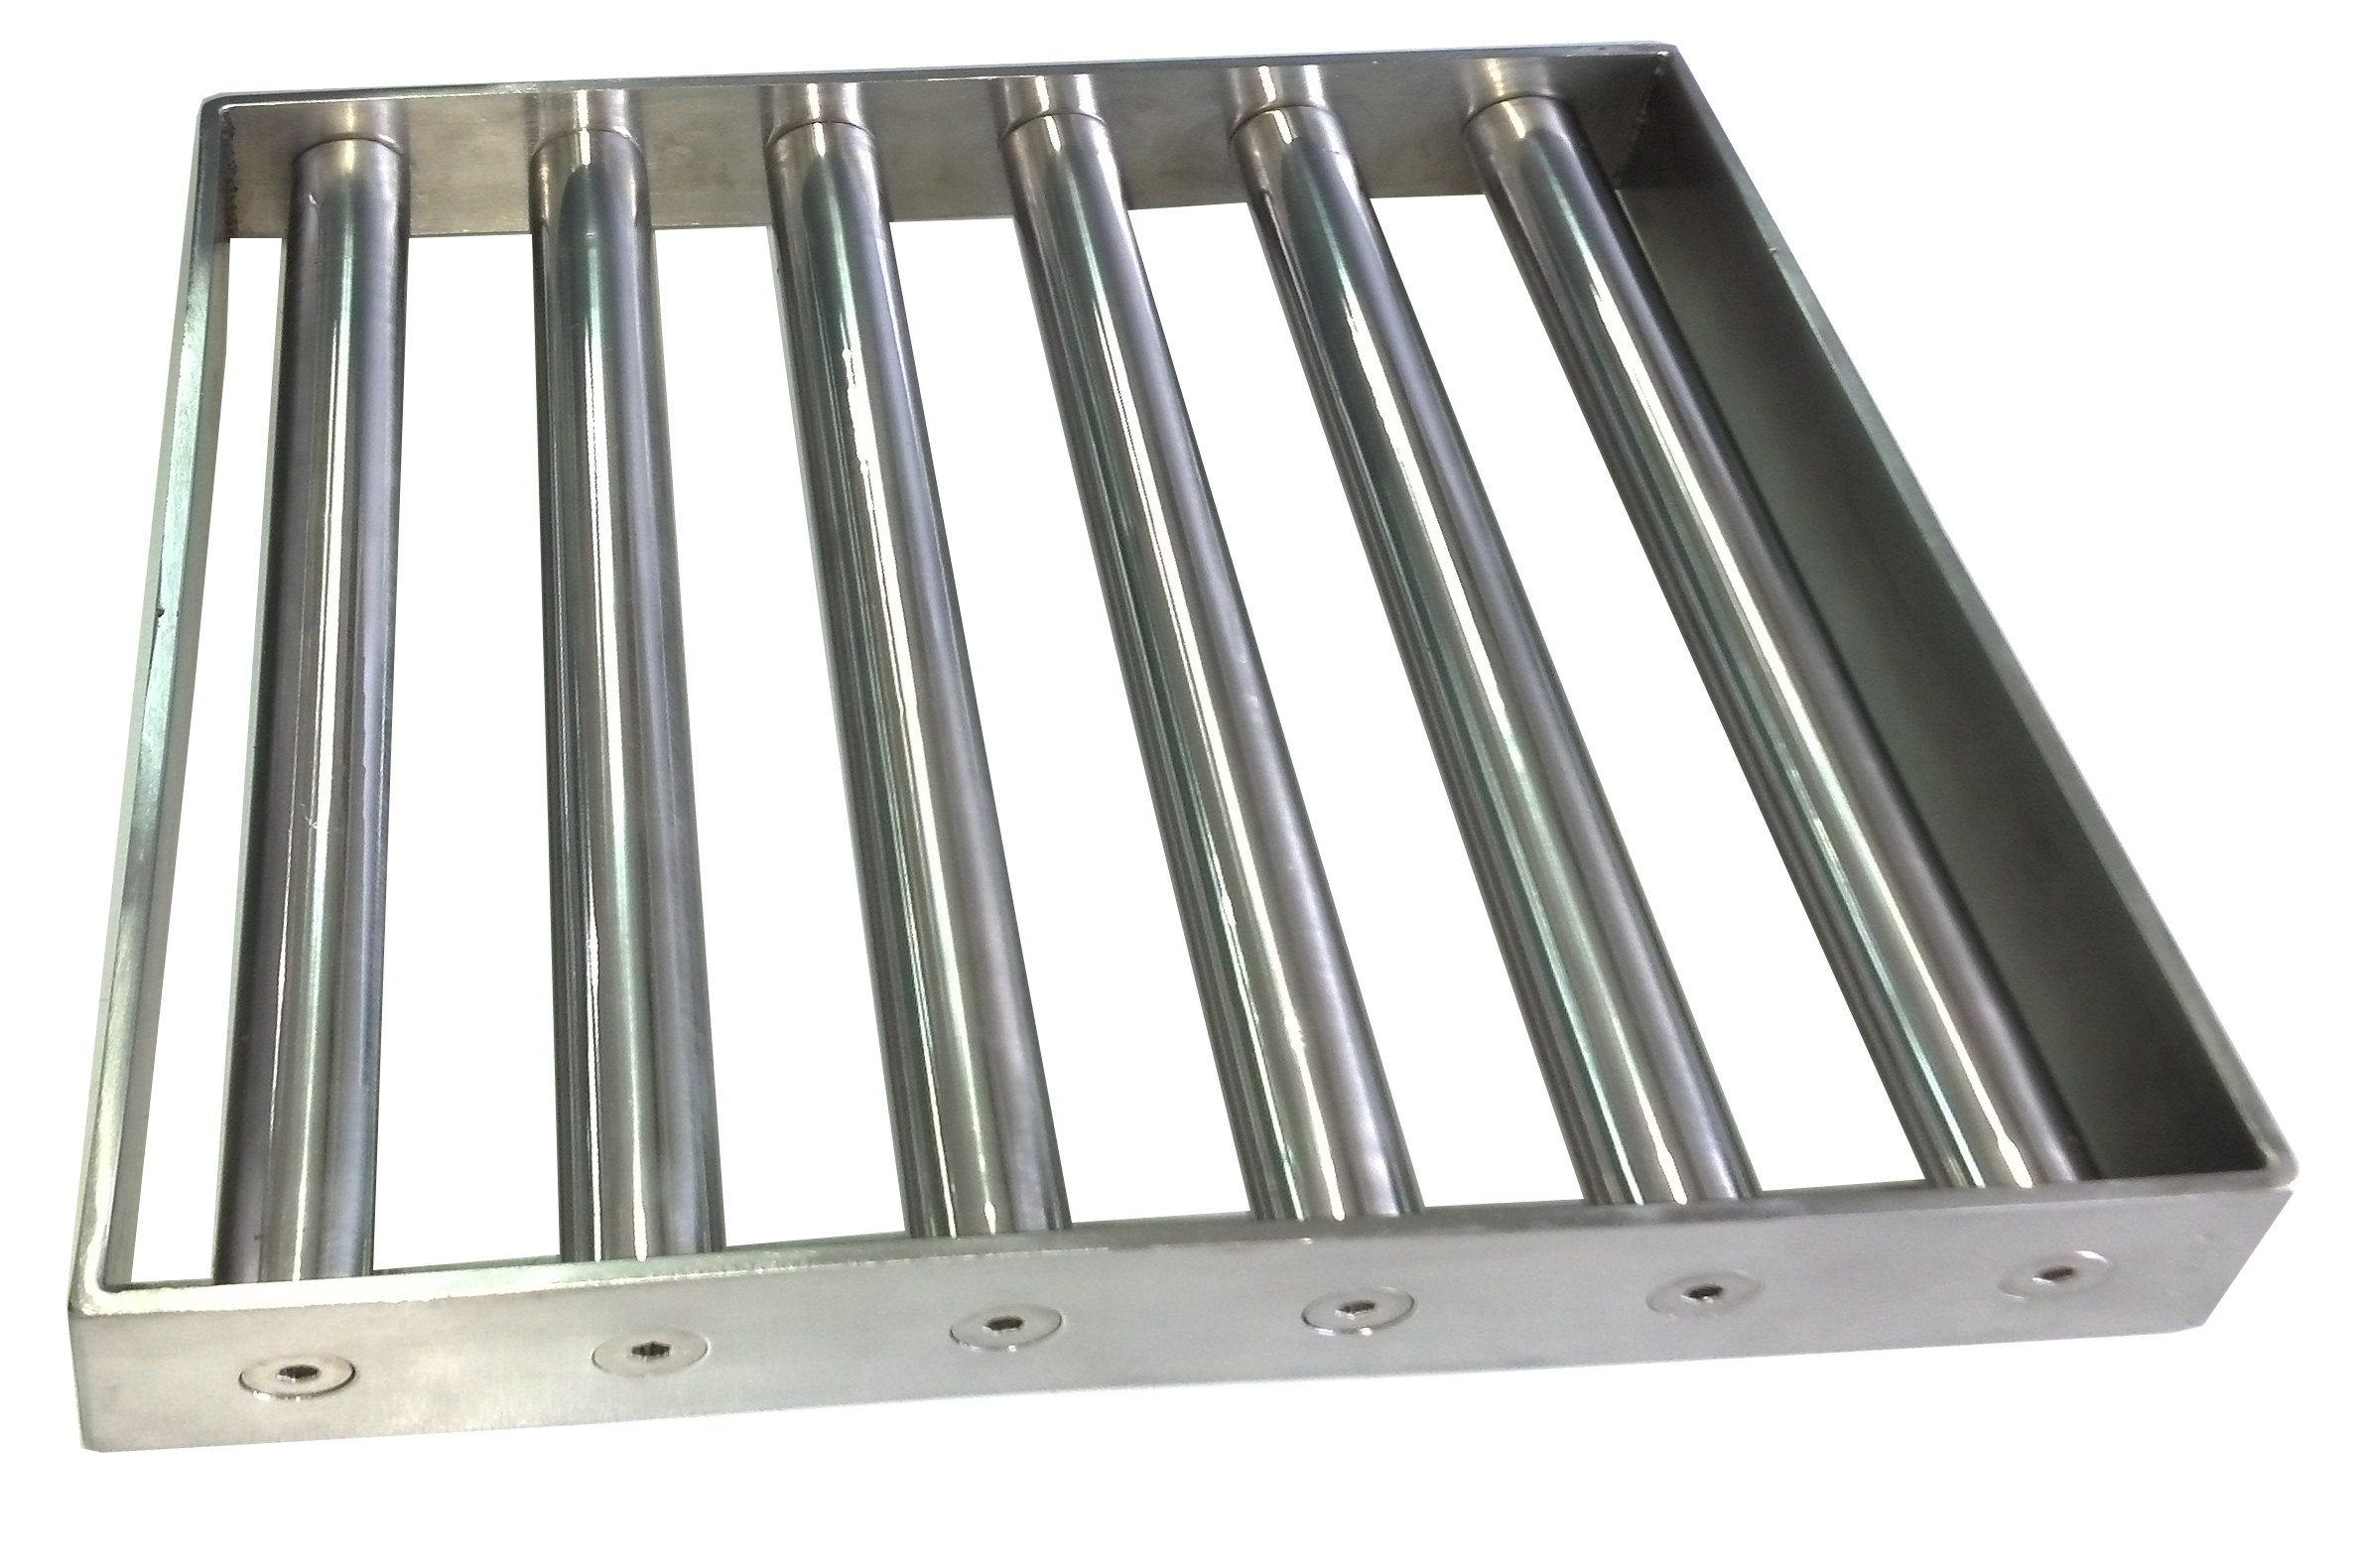 Grate Magnet Magnet Malaysia Contact Vince 6019 223 5470